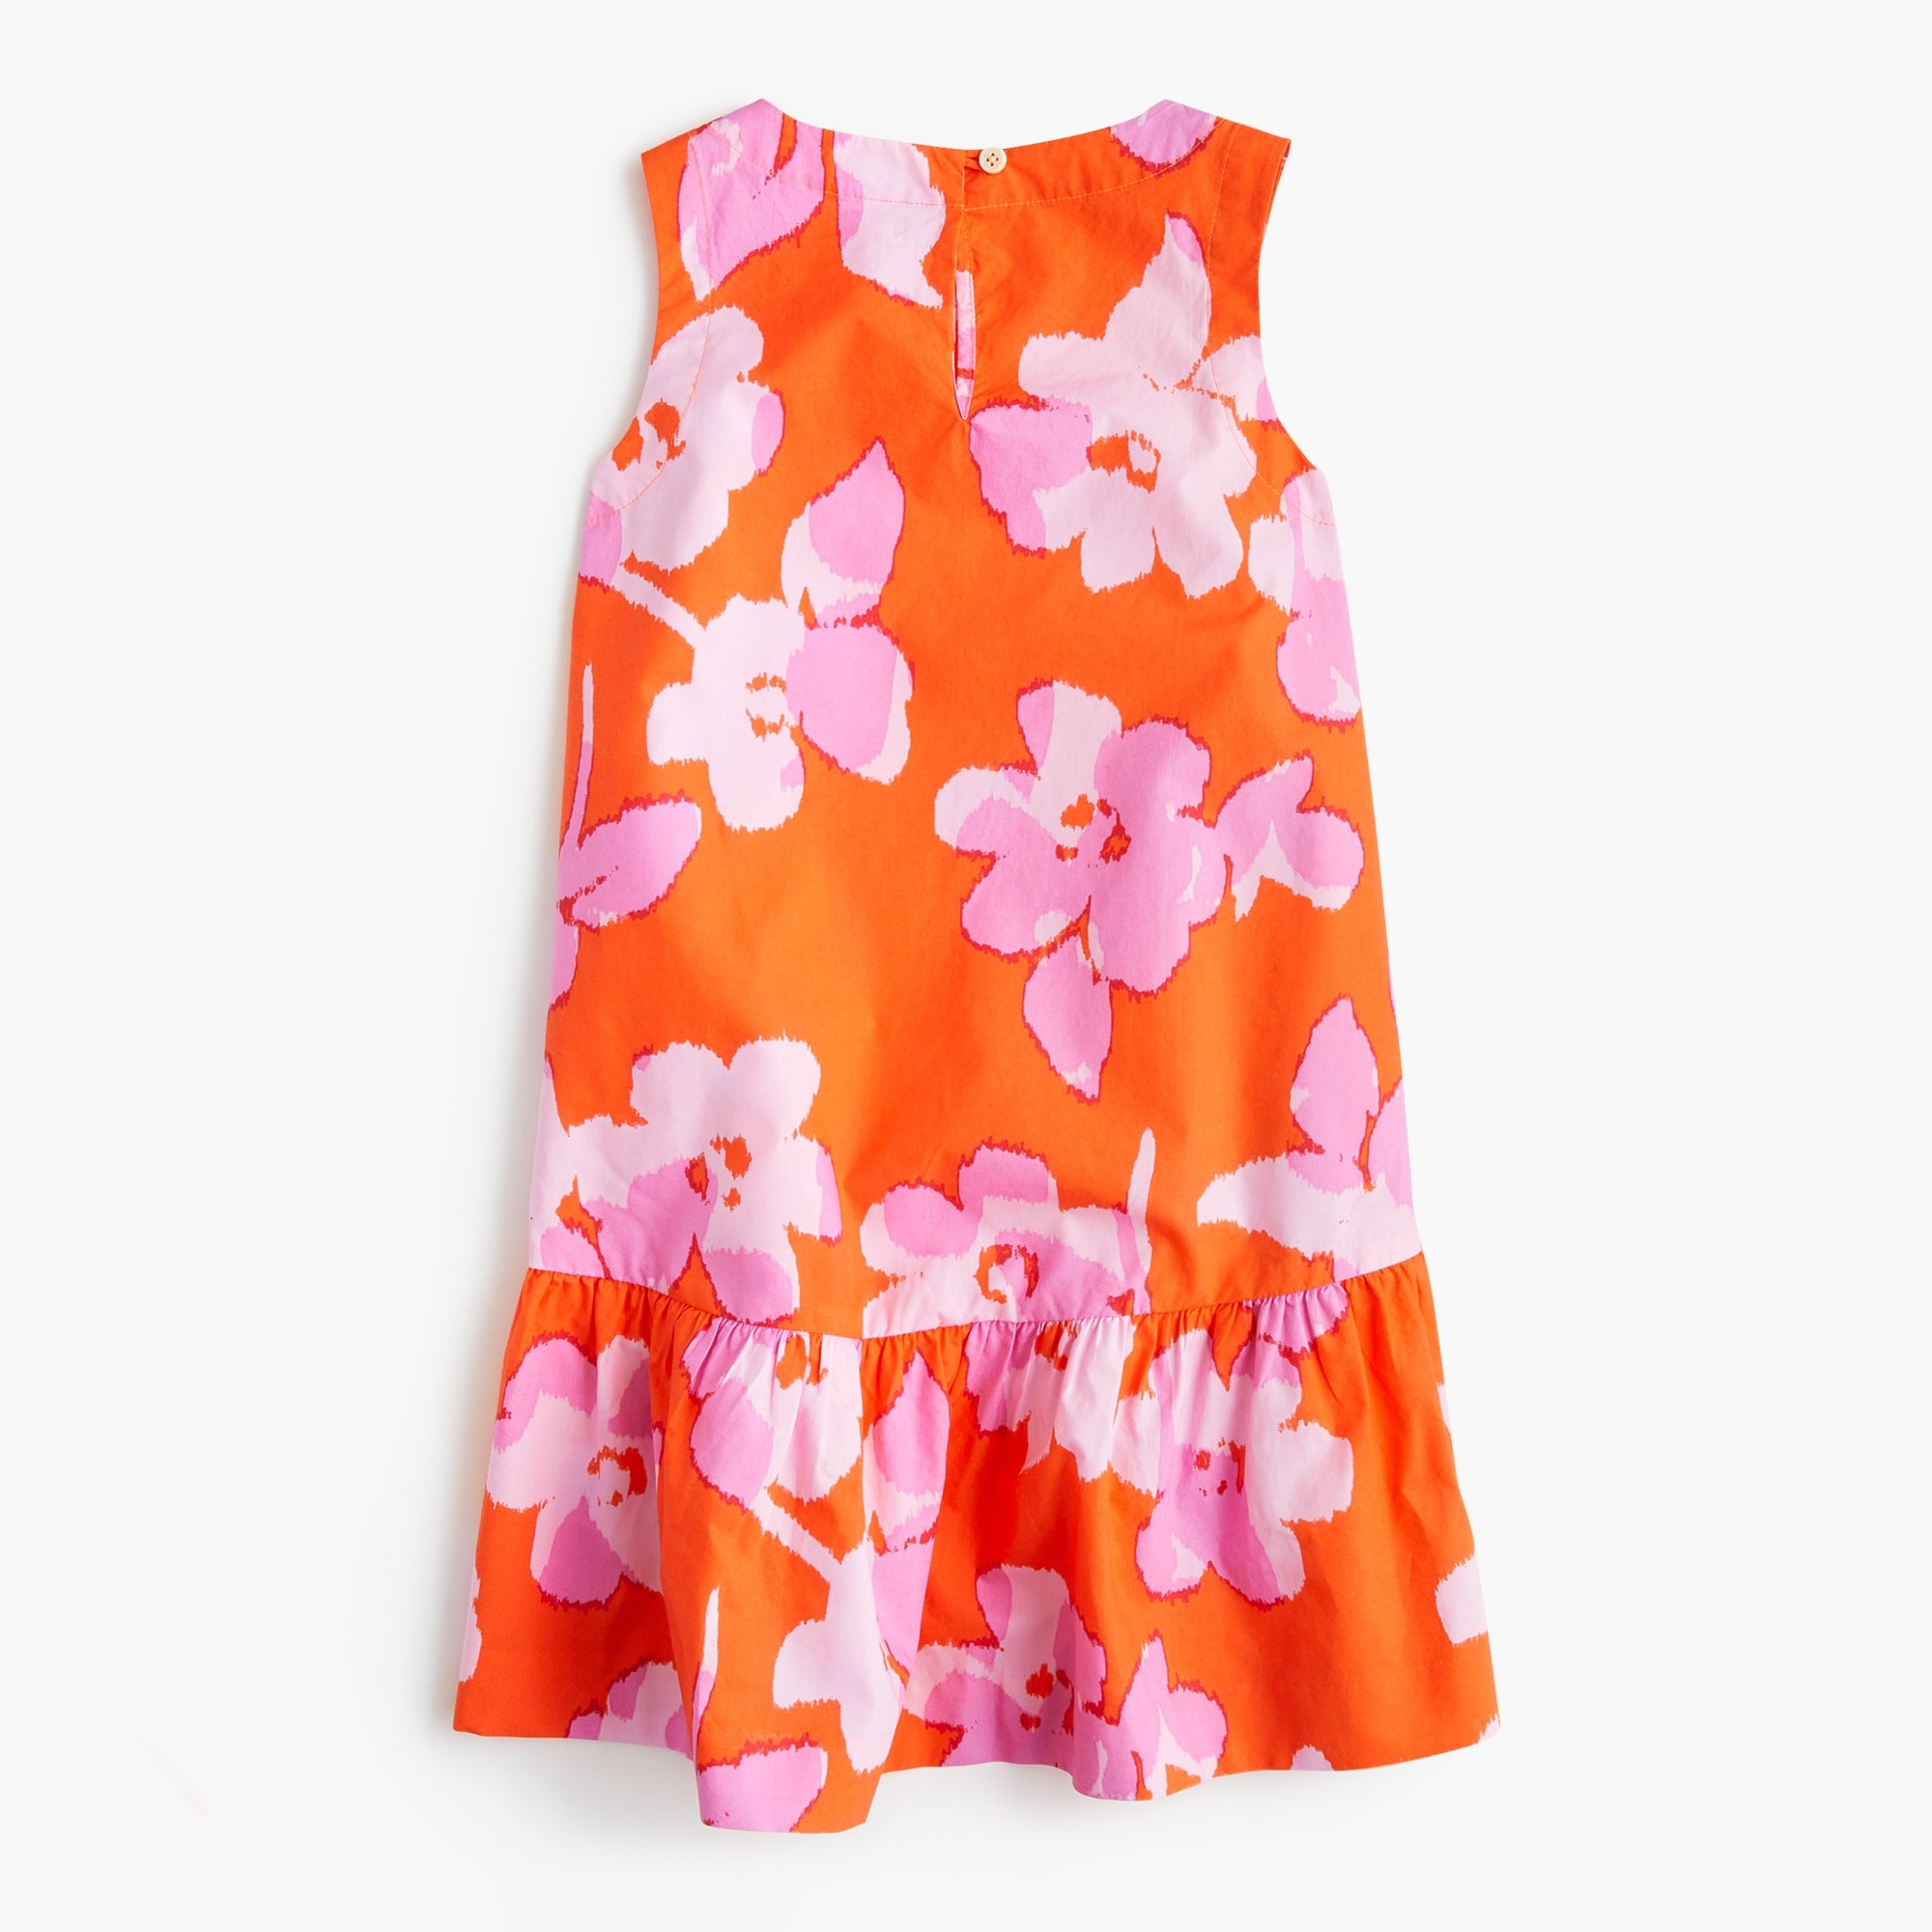 Girls' drop-waist dress in floral